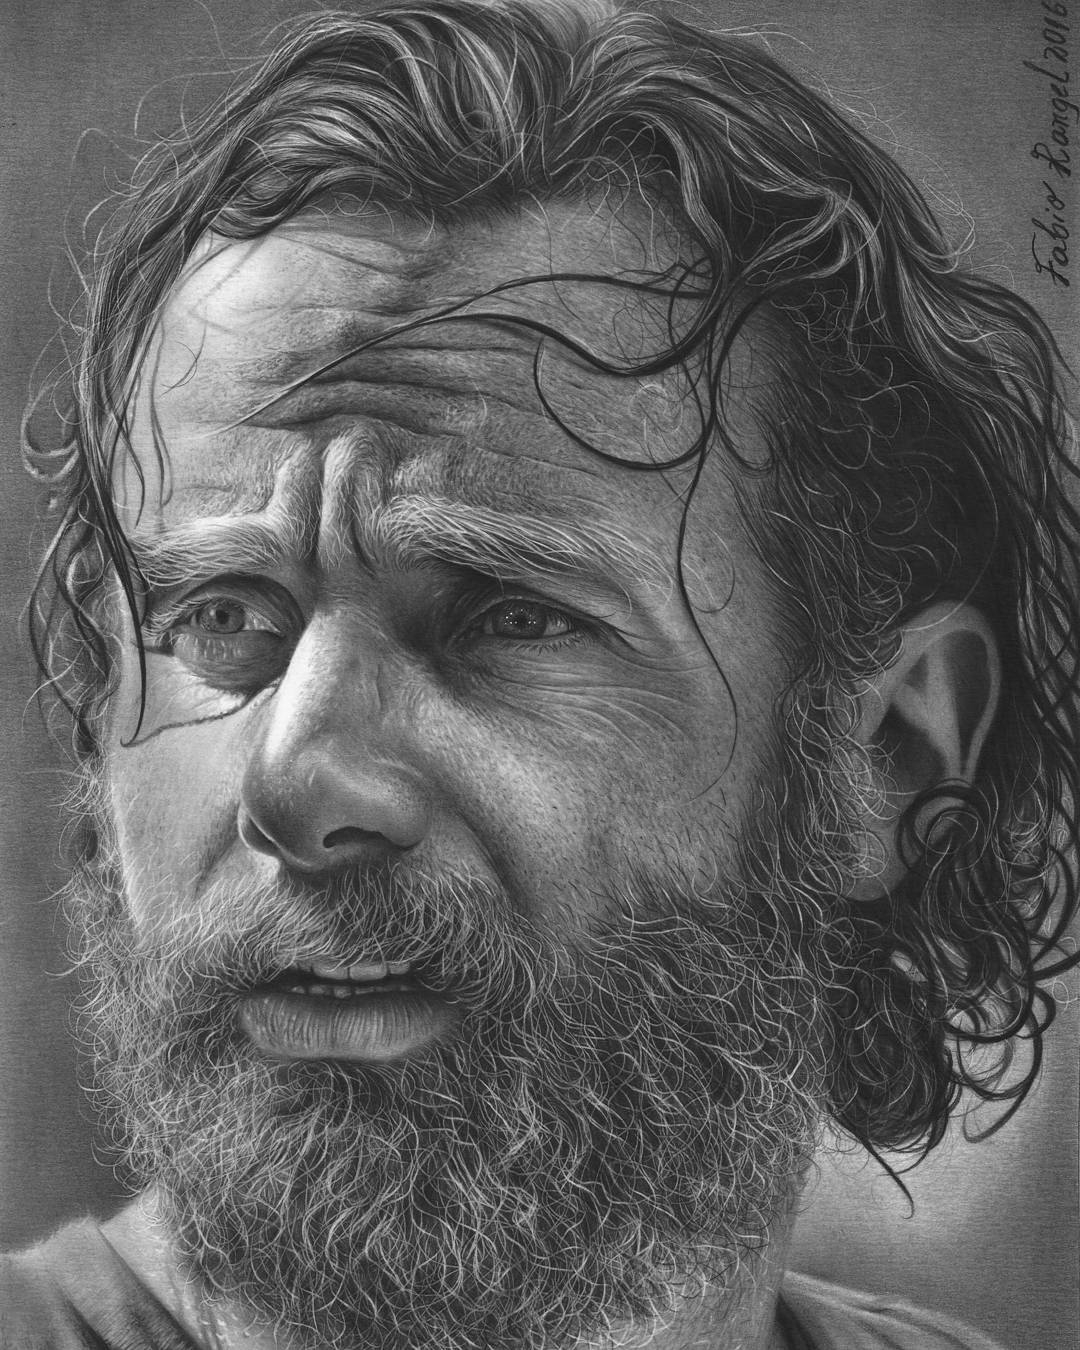 02-Rick-Grimes-The-Walking-Dead-Fabio-Rangel-Drawings-of-Protagonists-from-TV-and-Movies-www-designstack-co